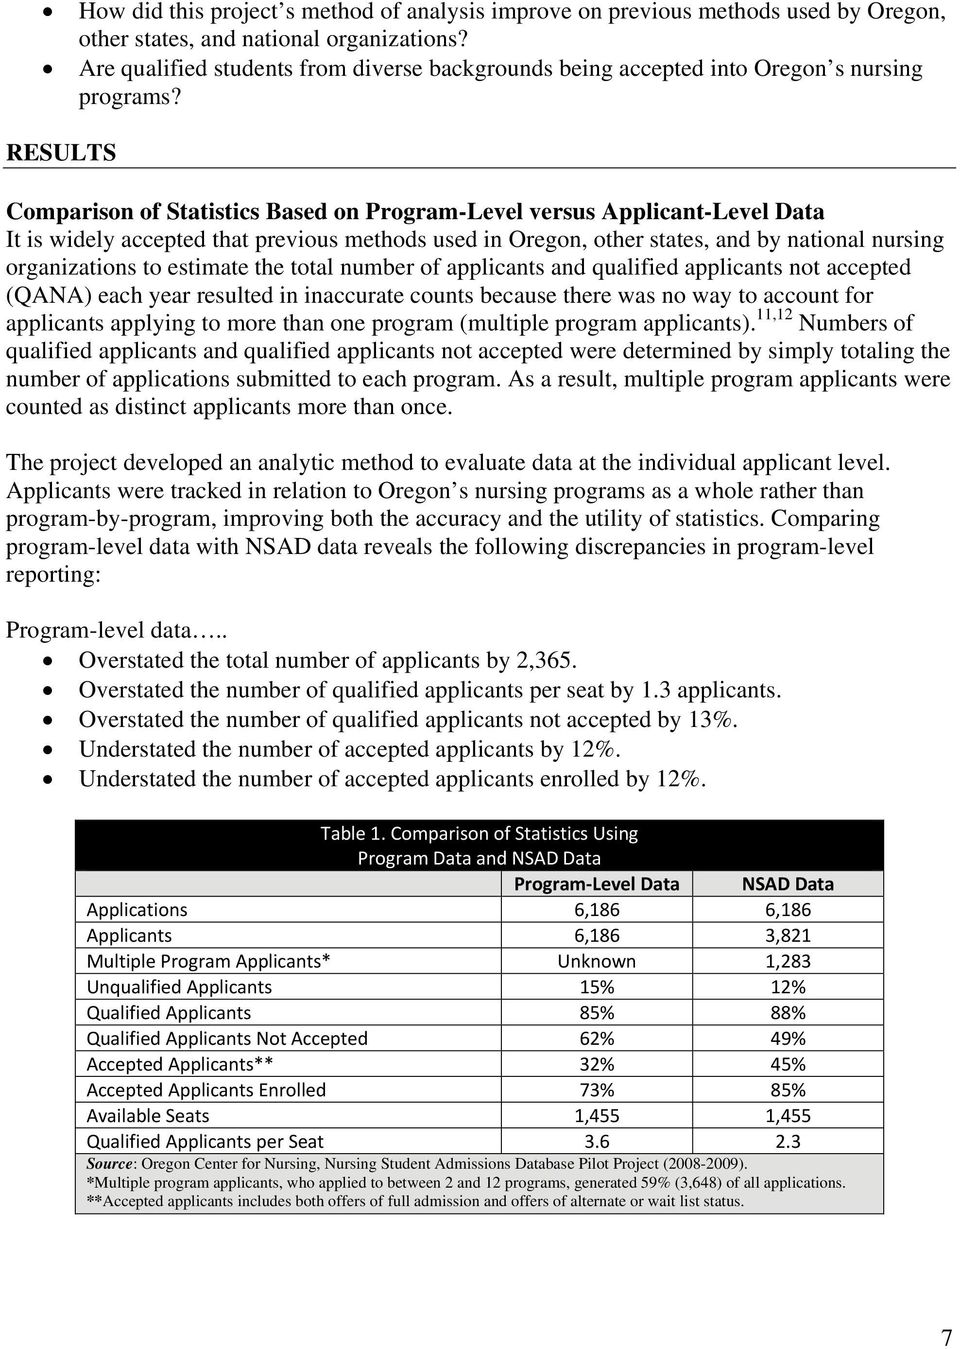 RESULTS Comparison of Statistics Based on Program-Level versus Applicant-Level Data It is widely accepted that previous methods used in Oregon, other states, and by national nursing organizations to